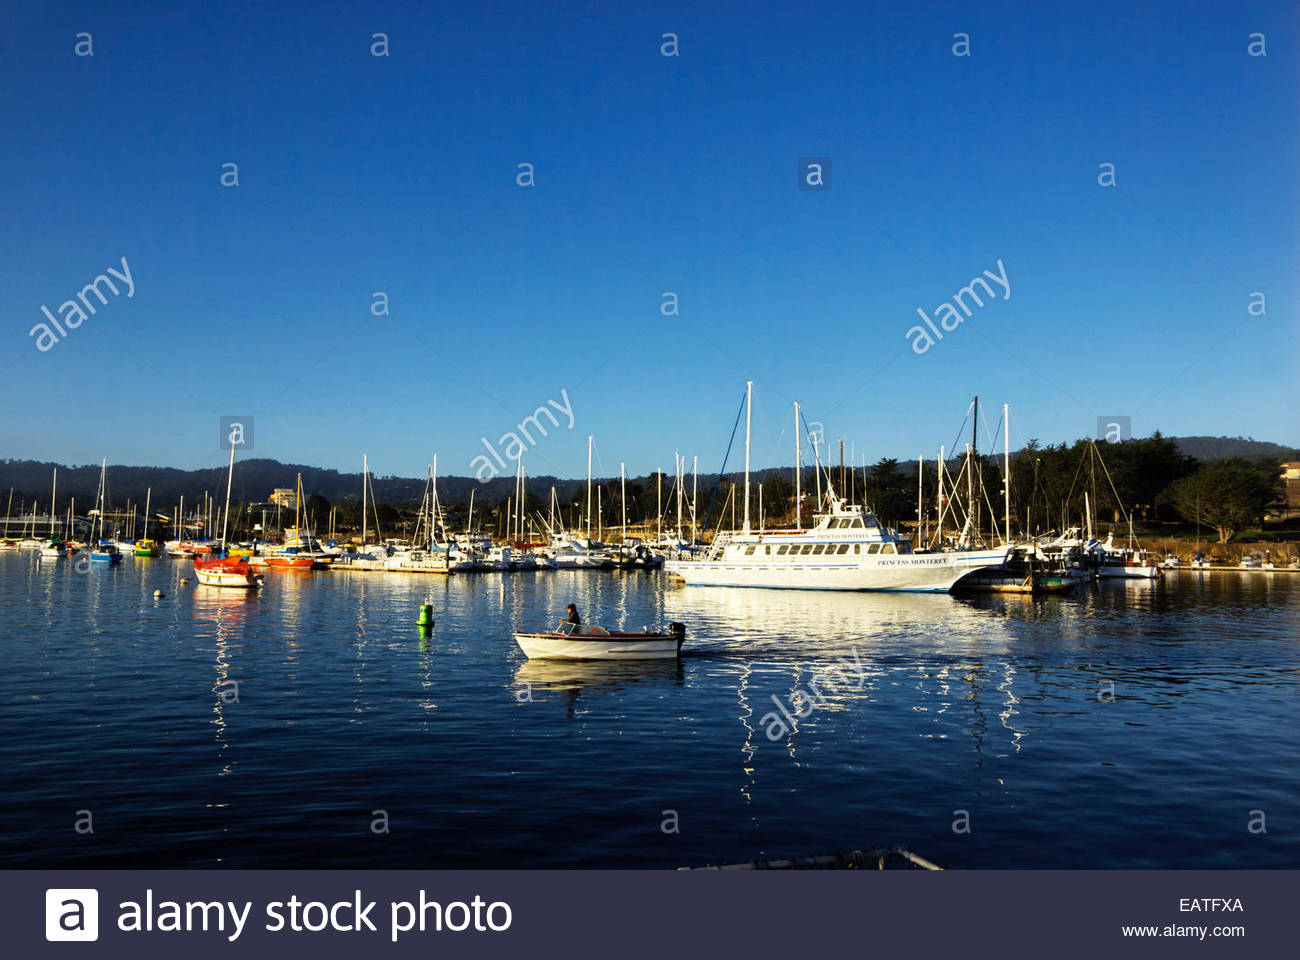 A man in a motorboat heads into Monterey Bay, Princess Monterey and other watercraft anchored in Monterey Harbor - Stock Image